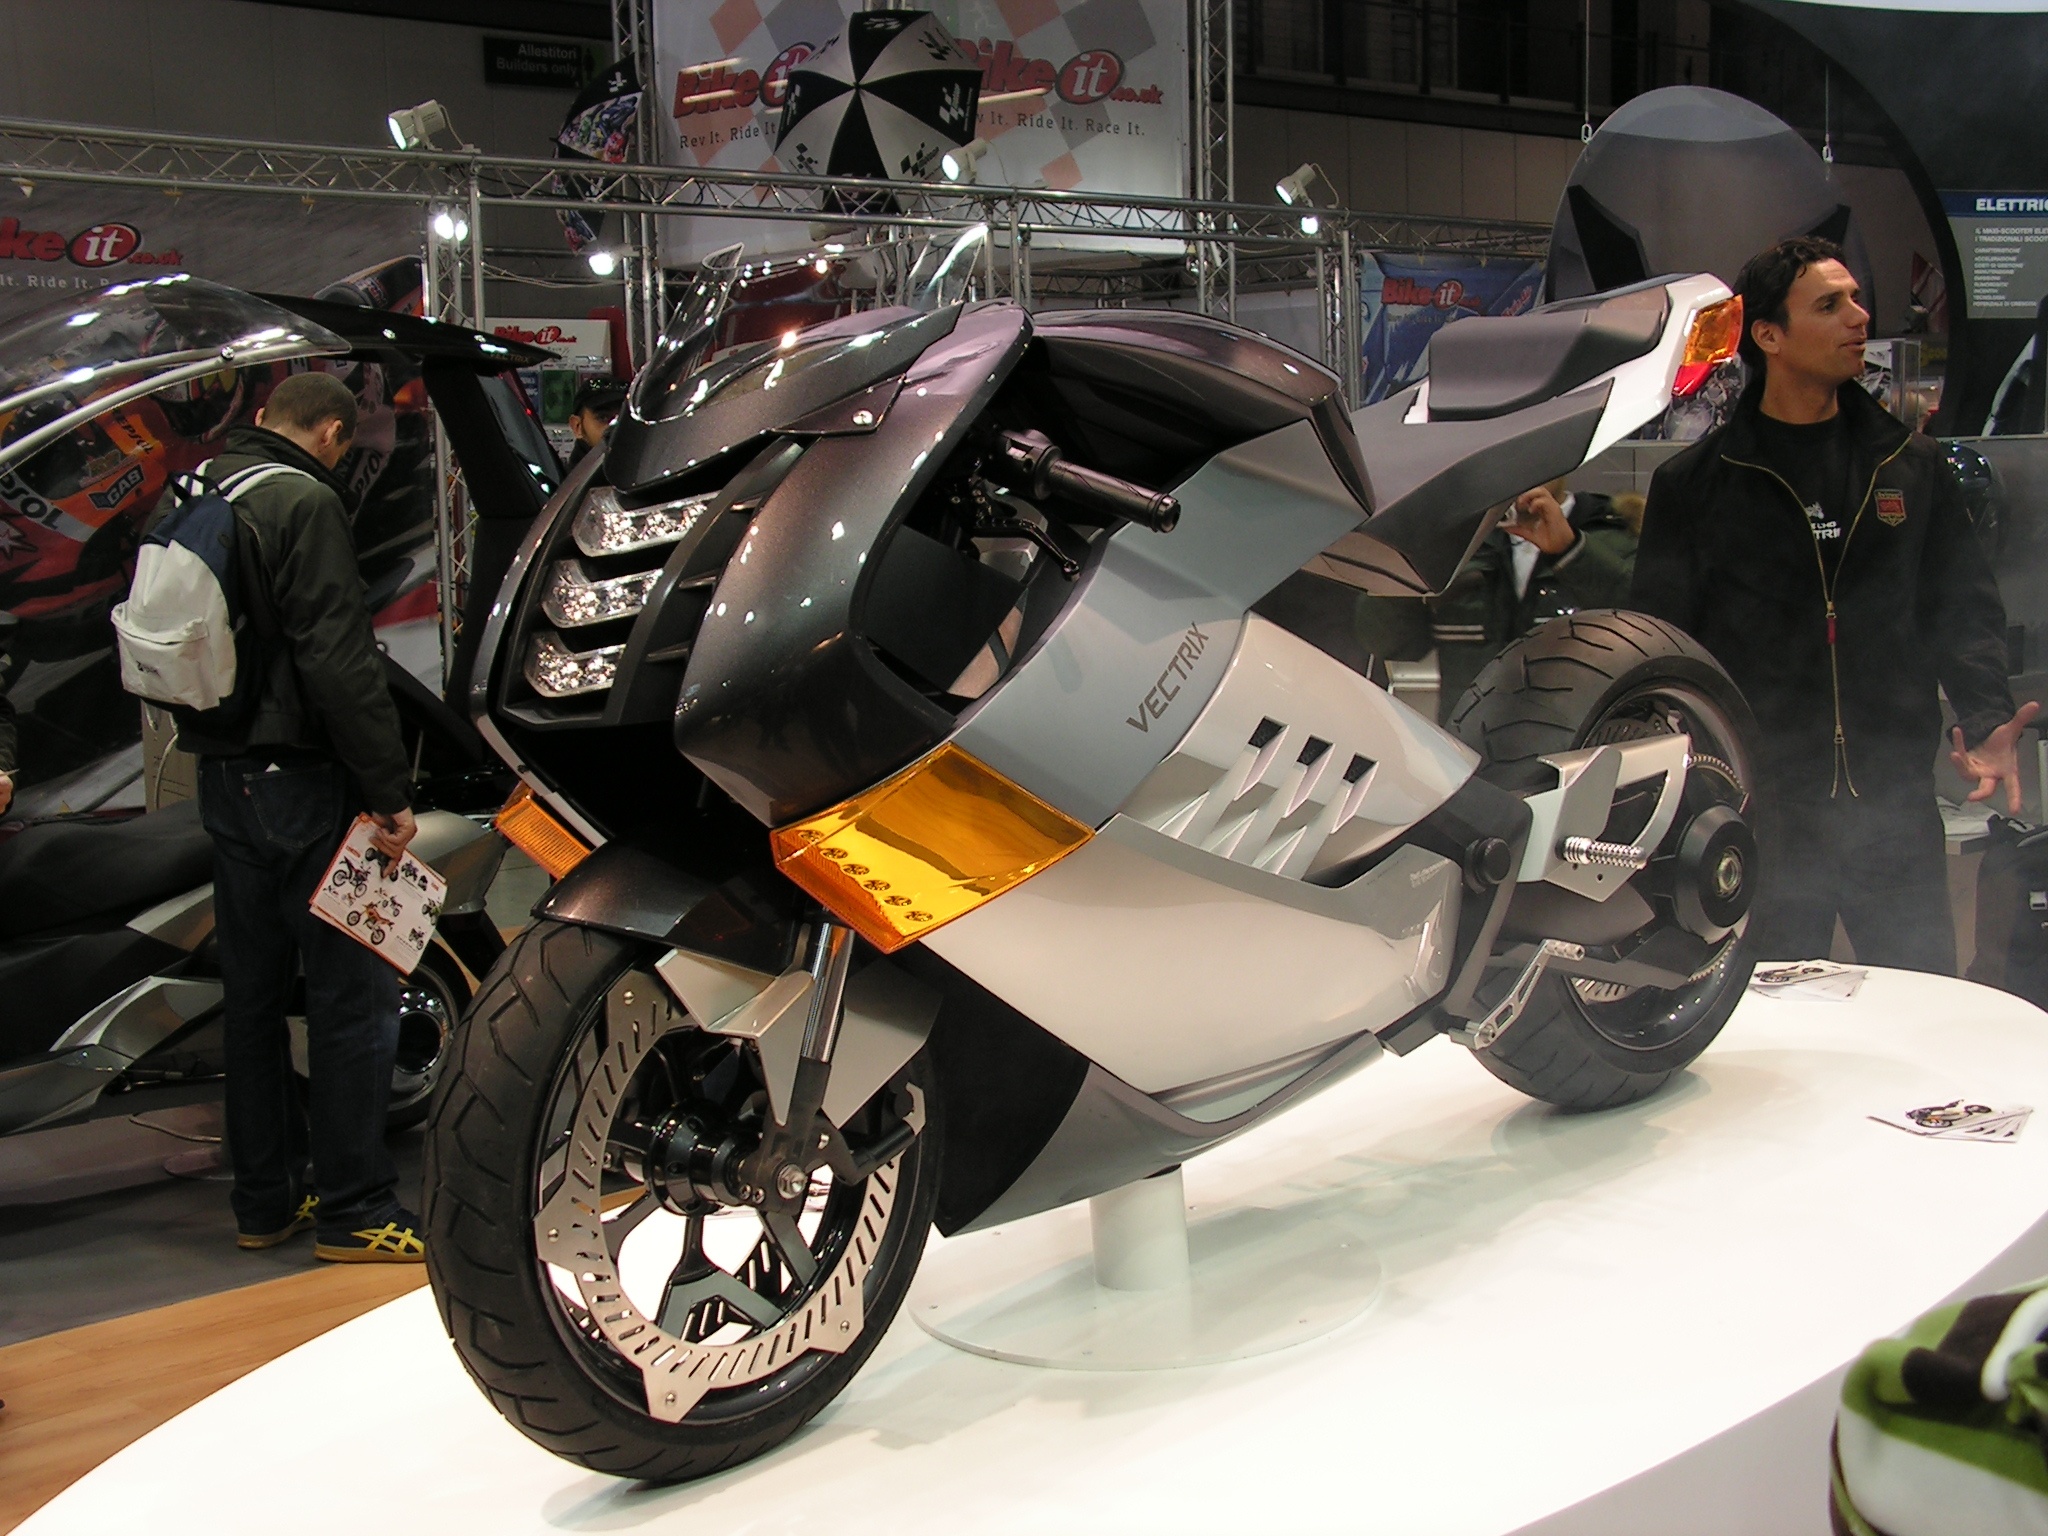 Vectrix superbike photo - 2